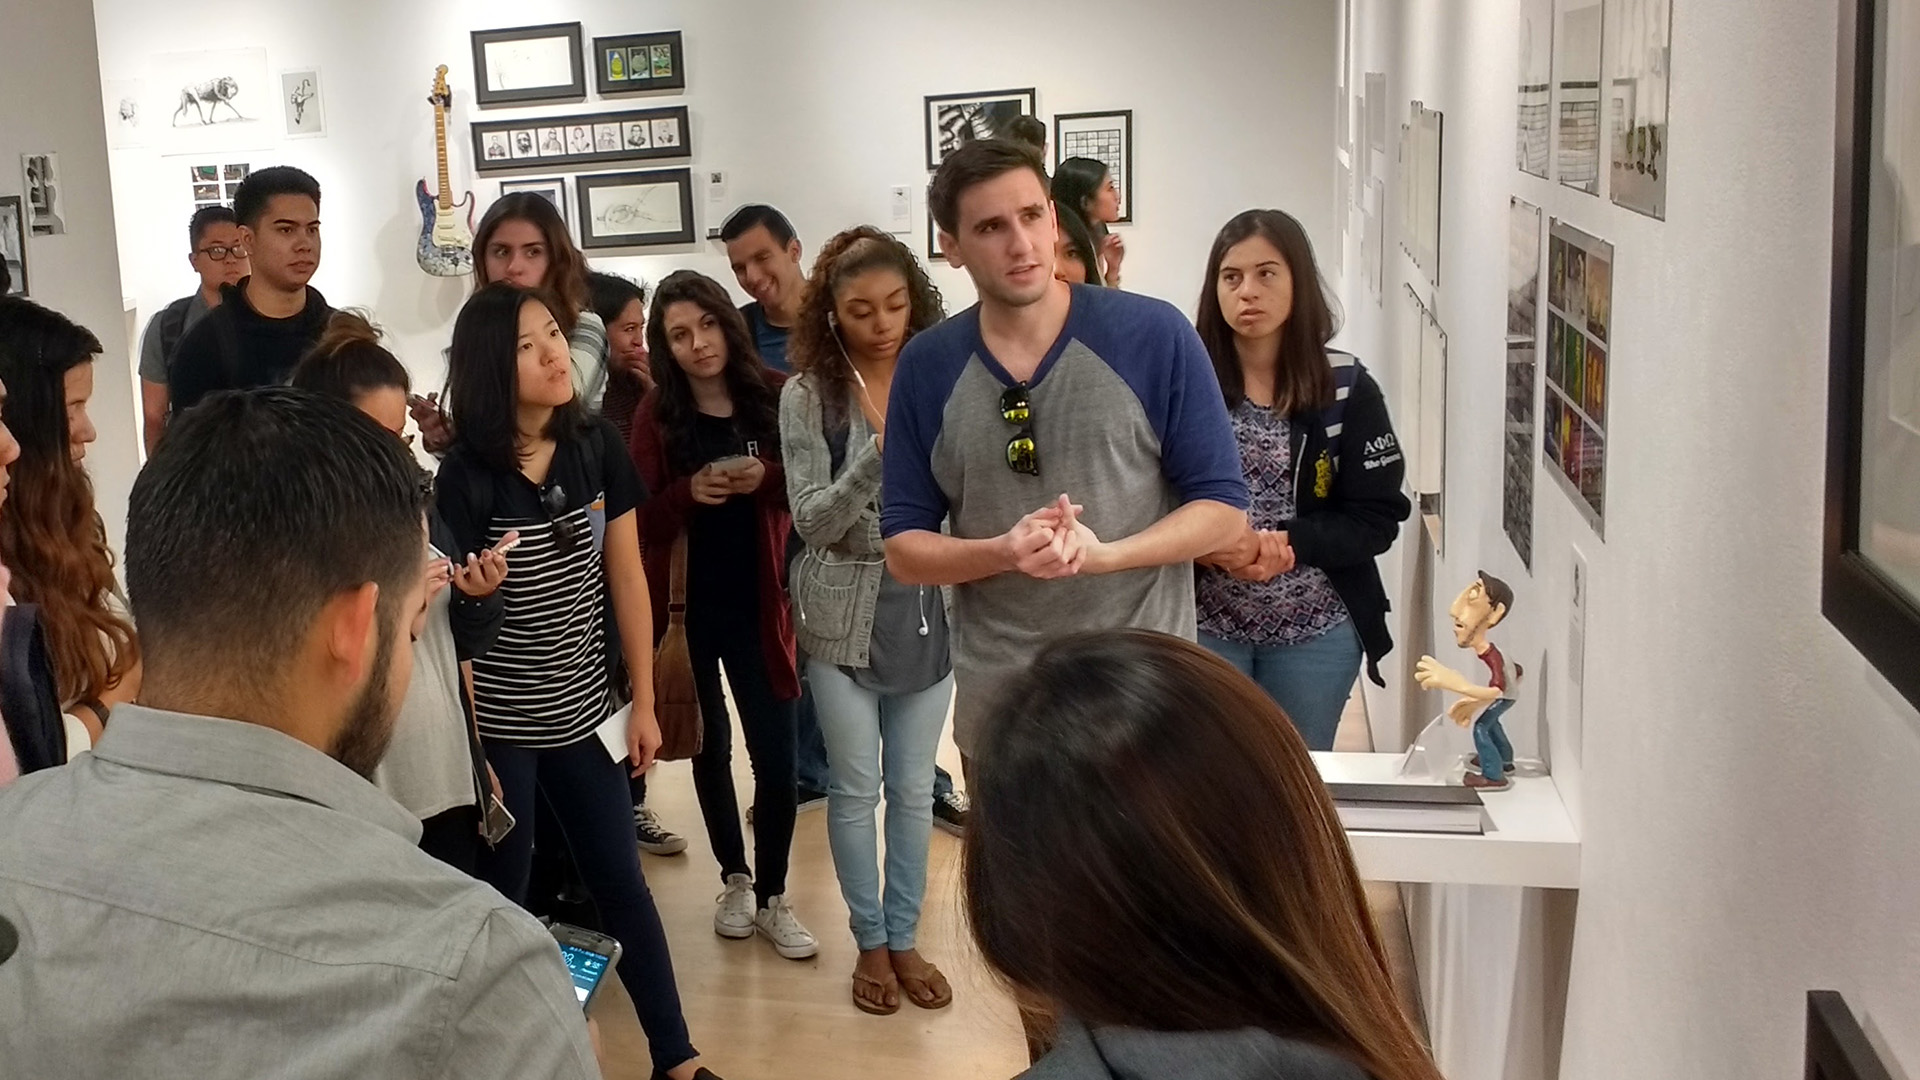 Tyler Turett discussing his BFA Thesis Exhibition with my students